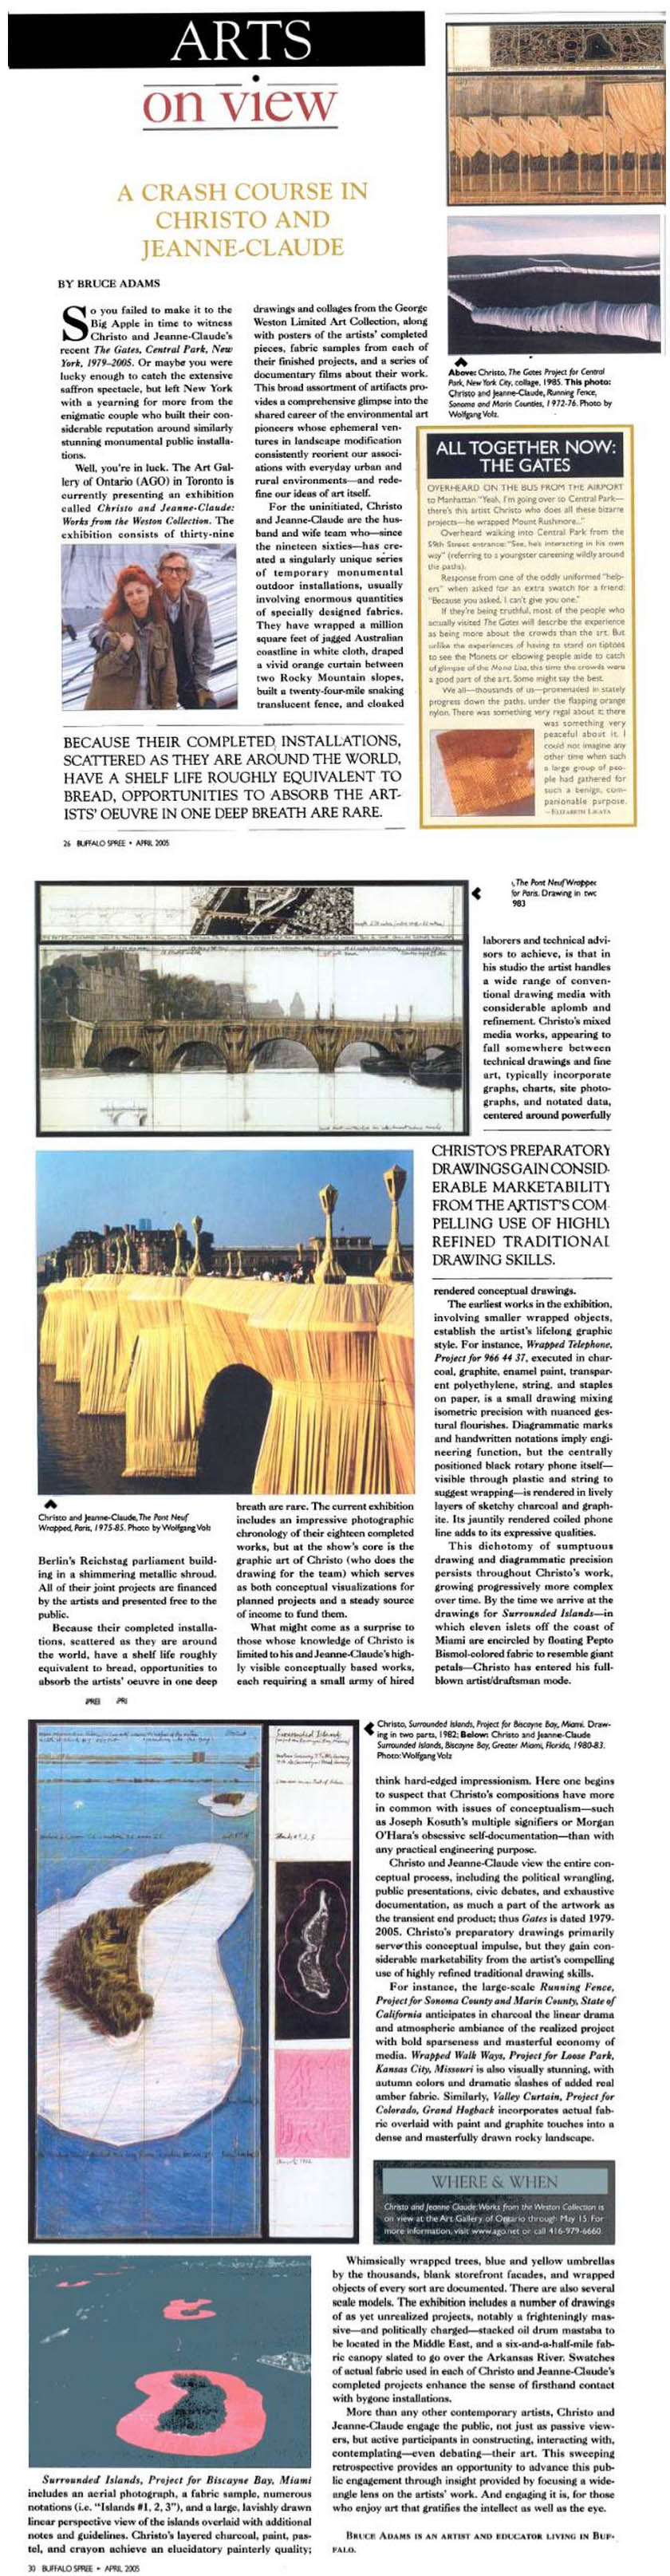 Bruce adams A Crash Course in Christo and Jeanne-Claude, April 2005